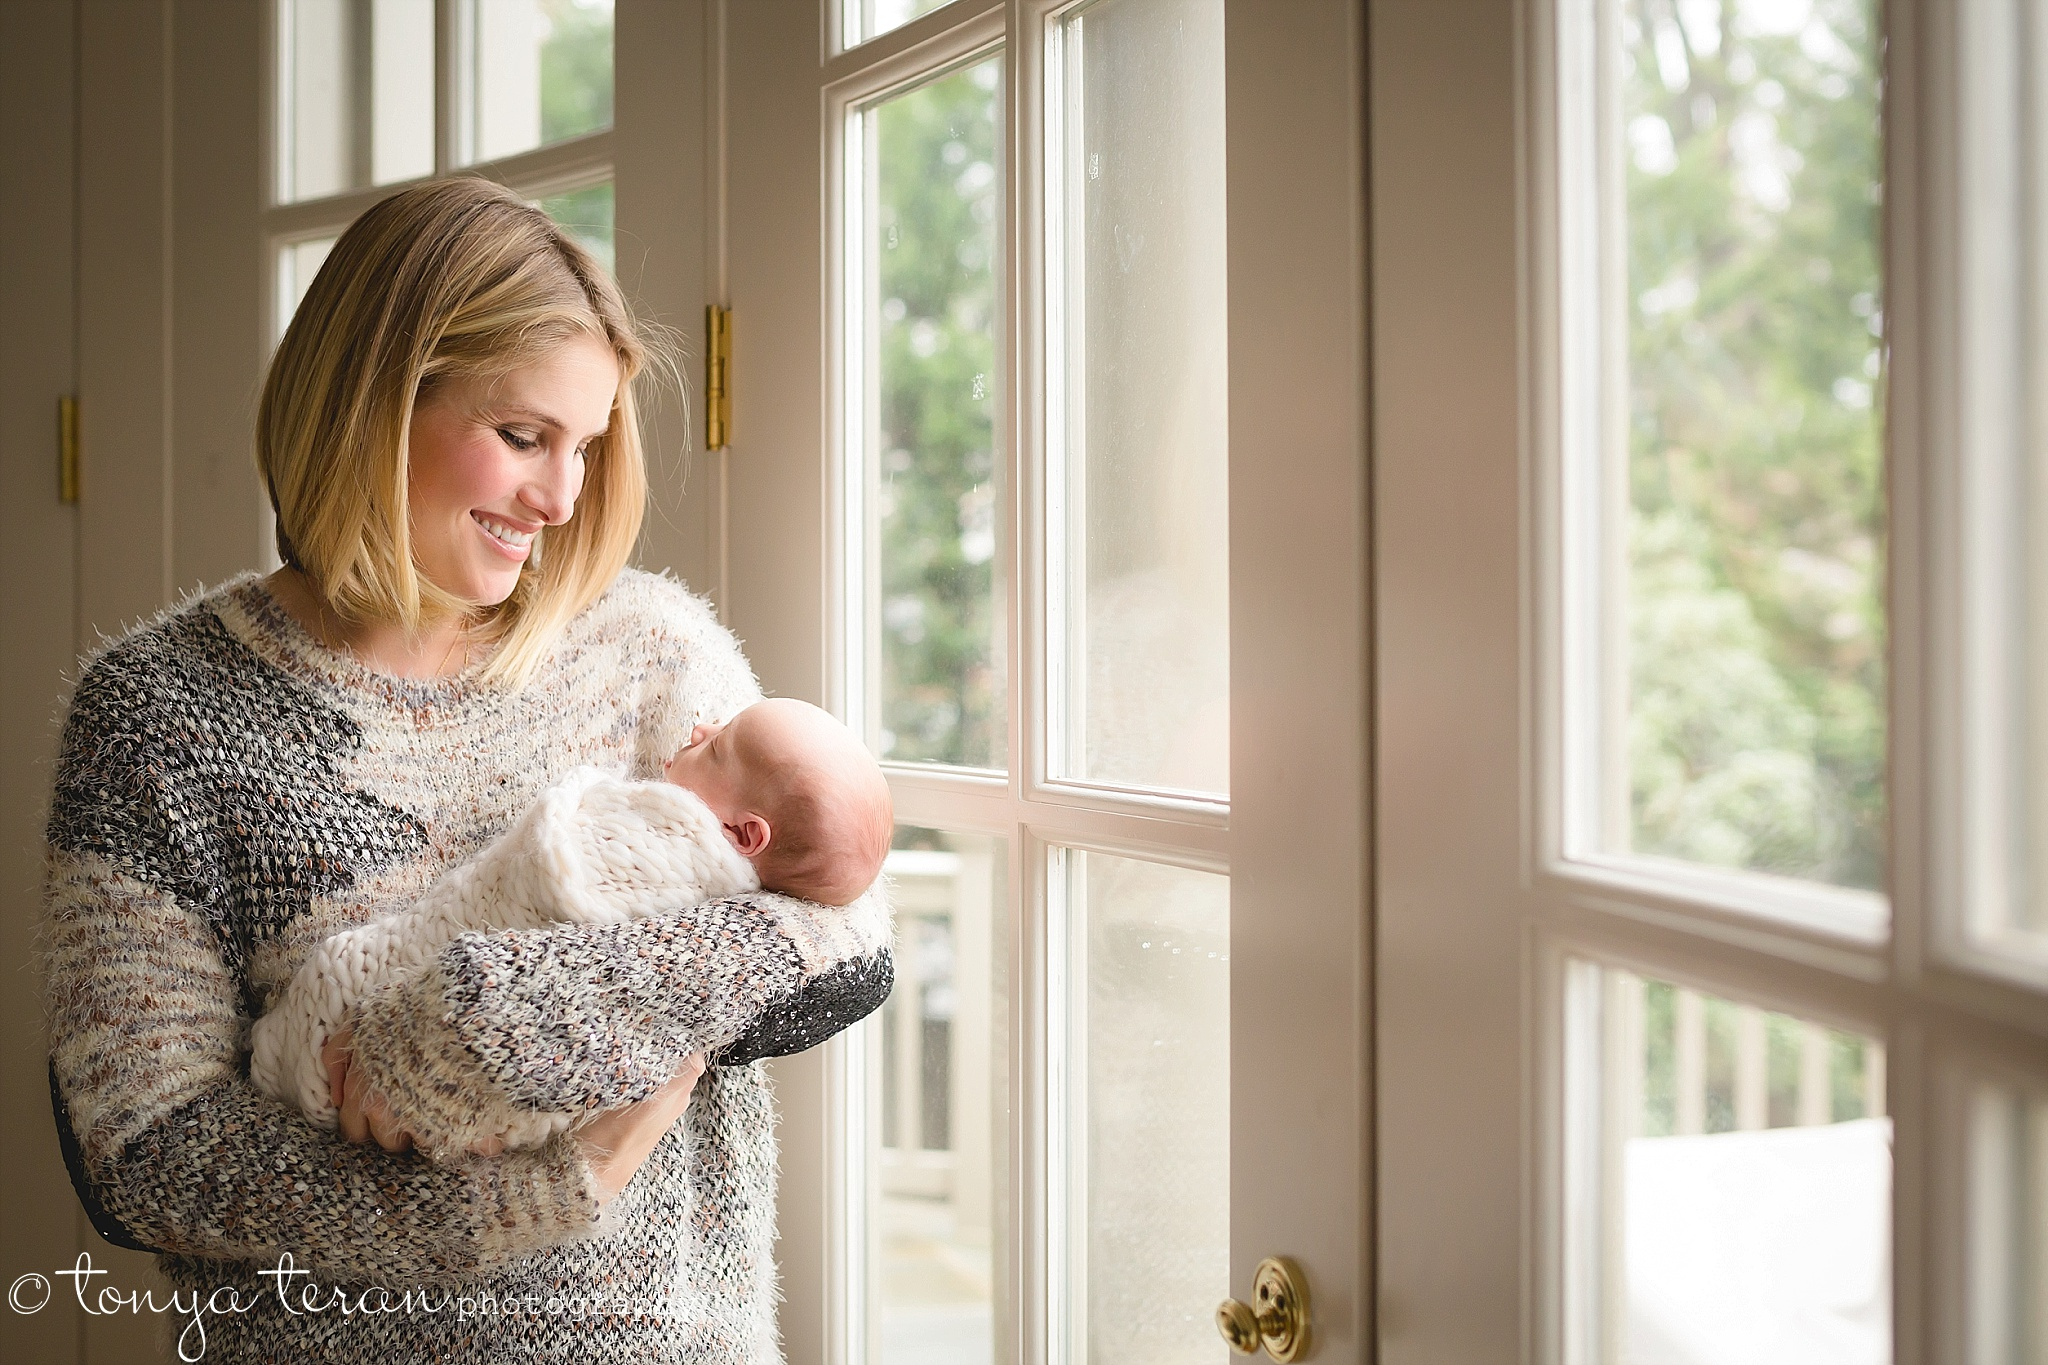 Family Newborn Photo Session | Tonya Teran Photography, Gaithersburg, MD Newborn, Baby, and Family Photographer